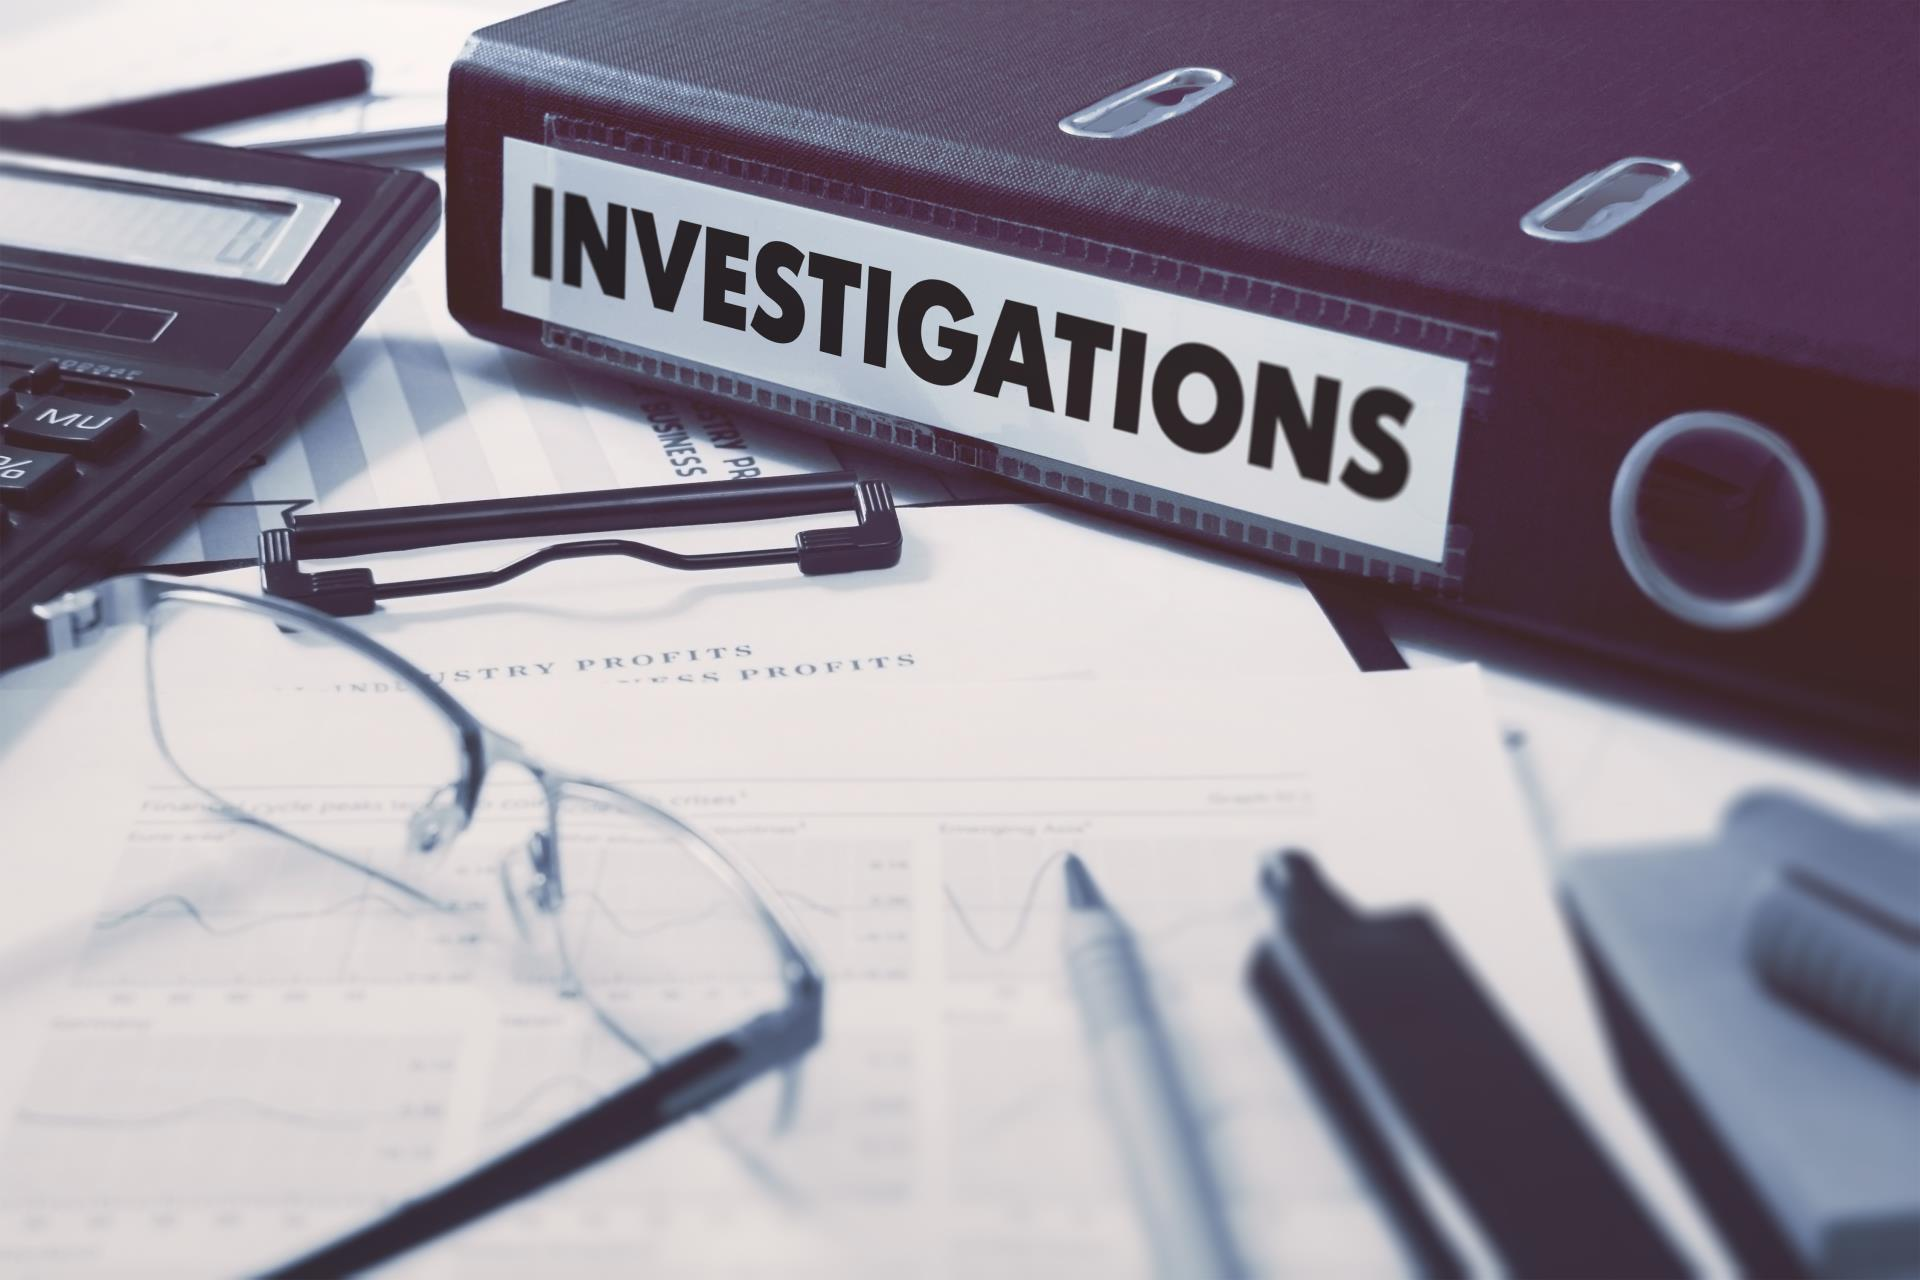 Displays a binder that says investigations